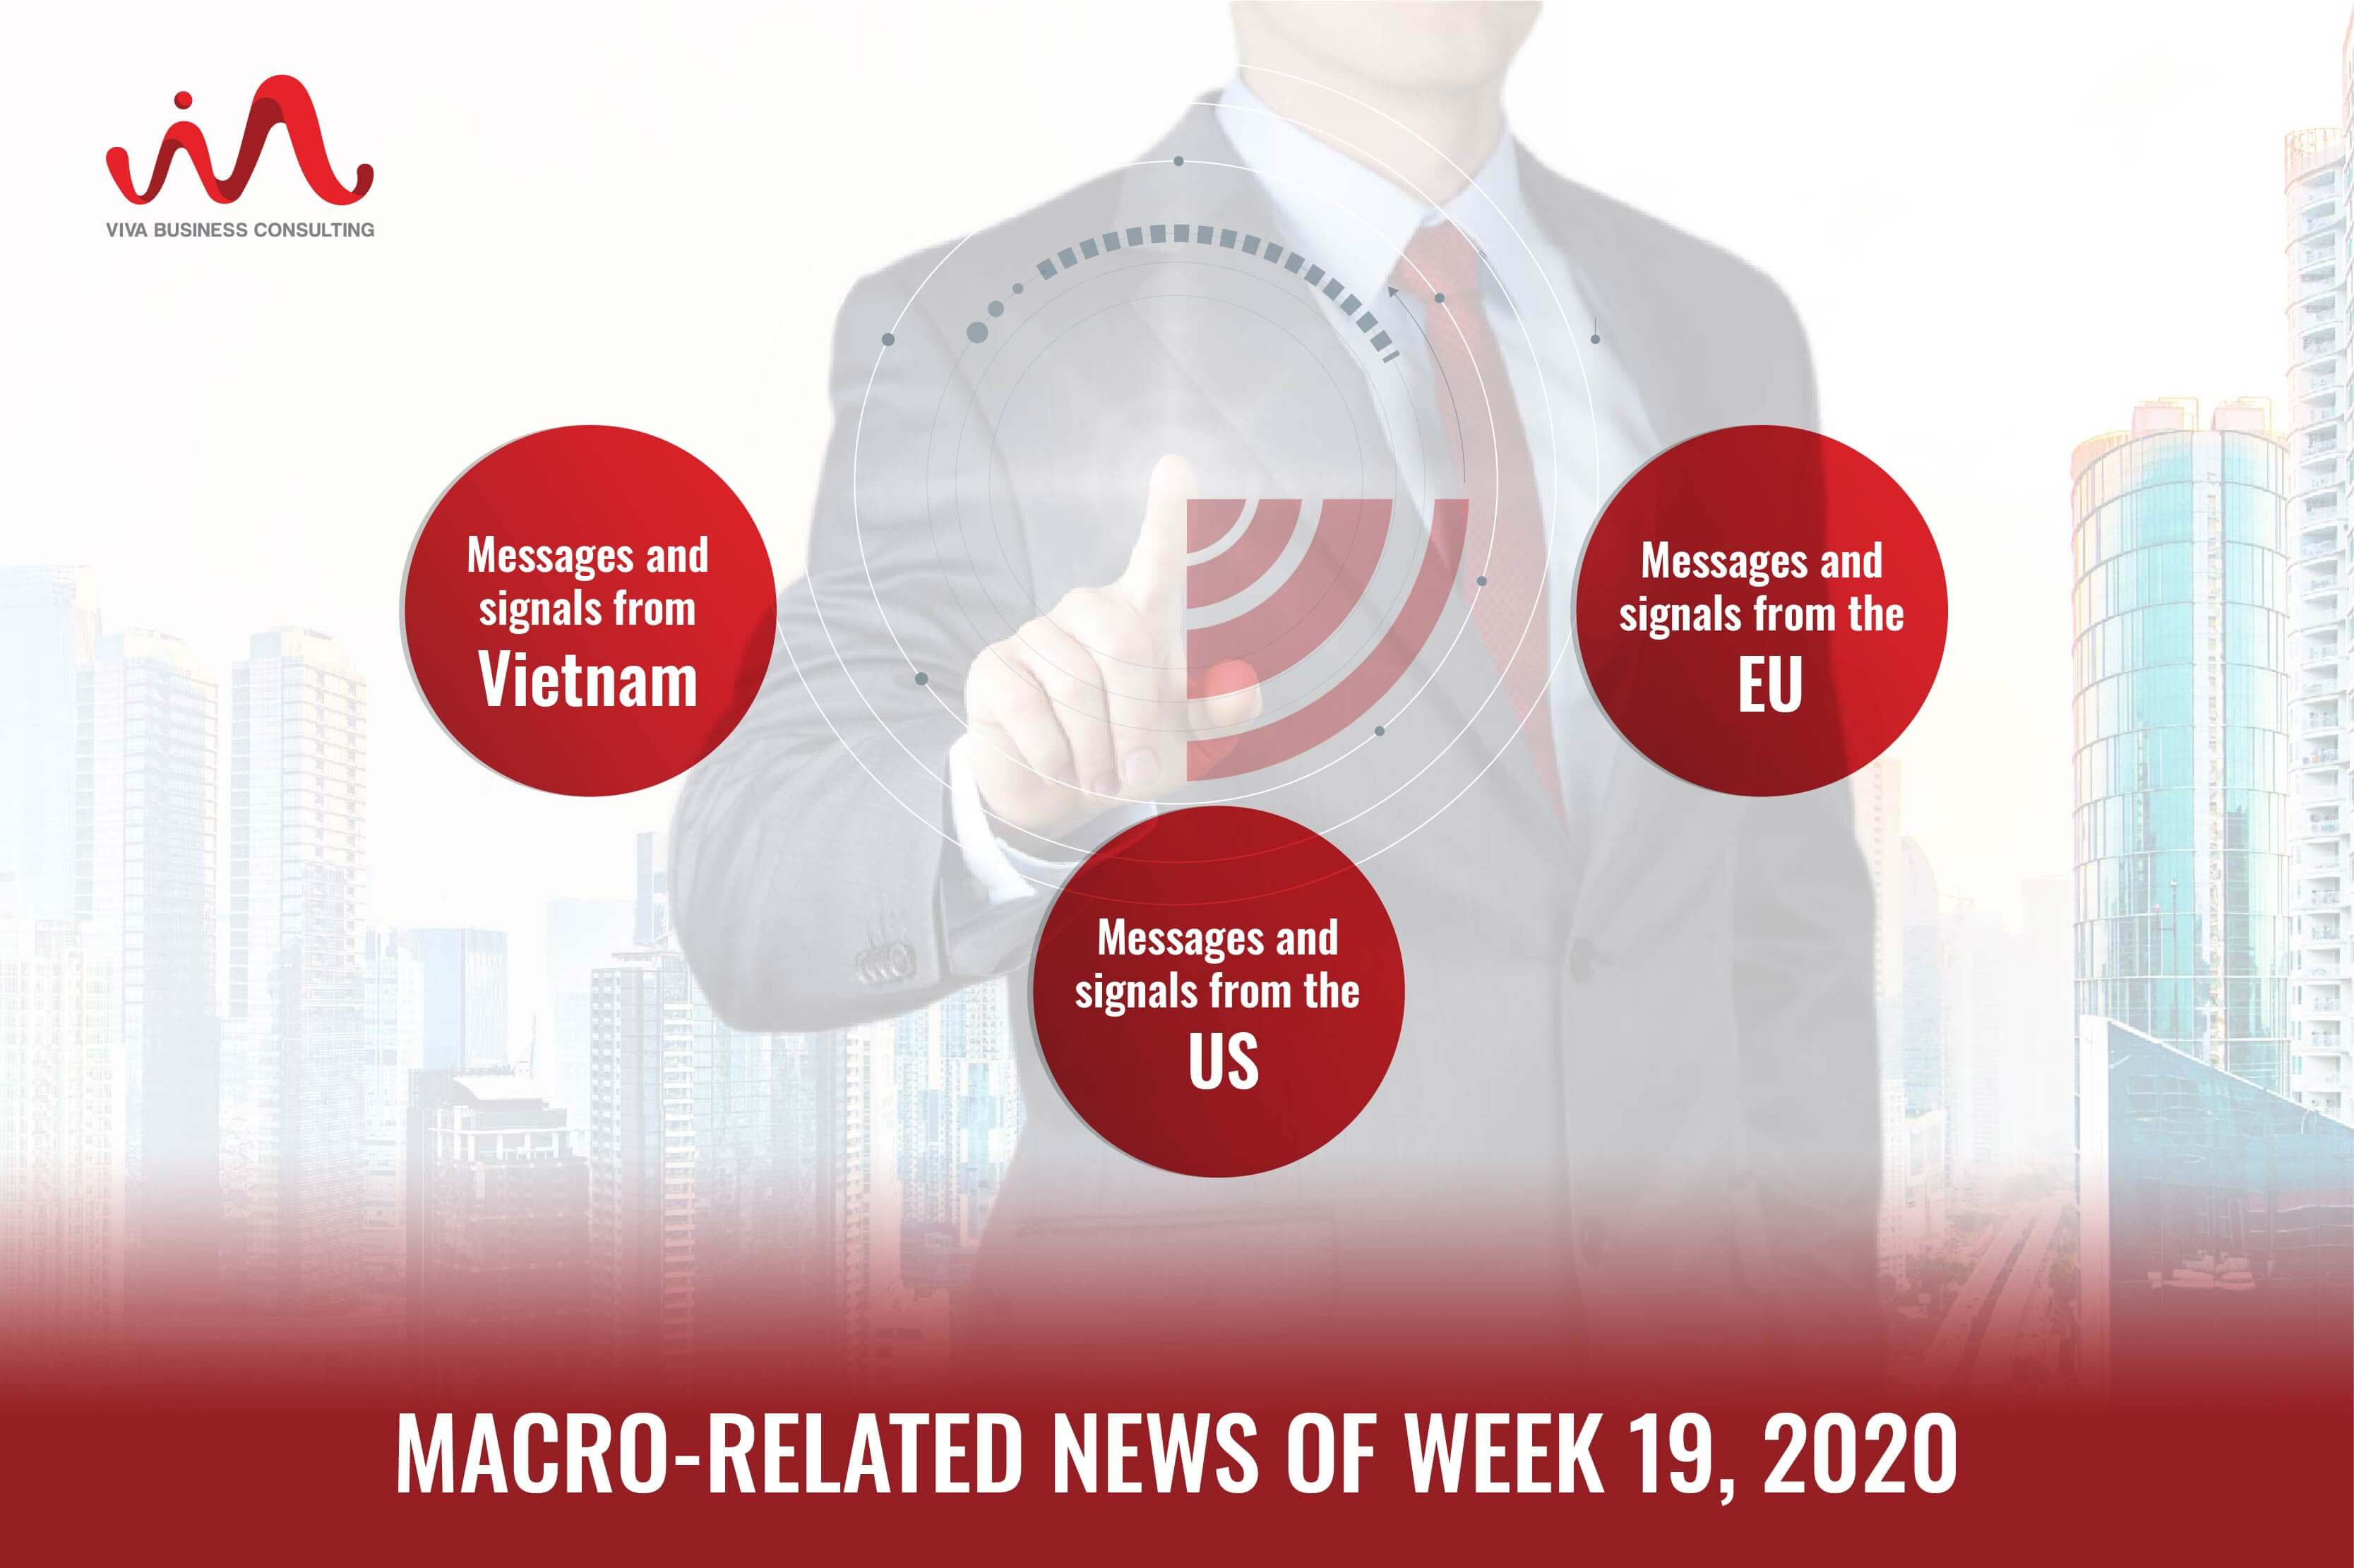 marco-related news of week 19